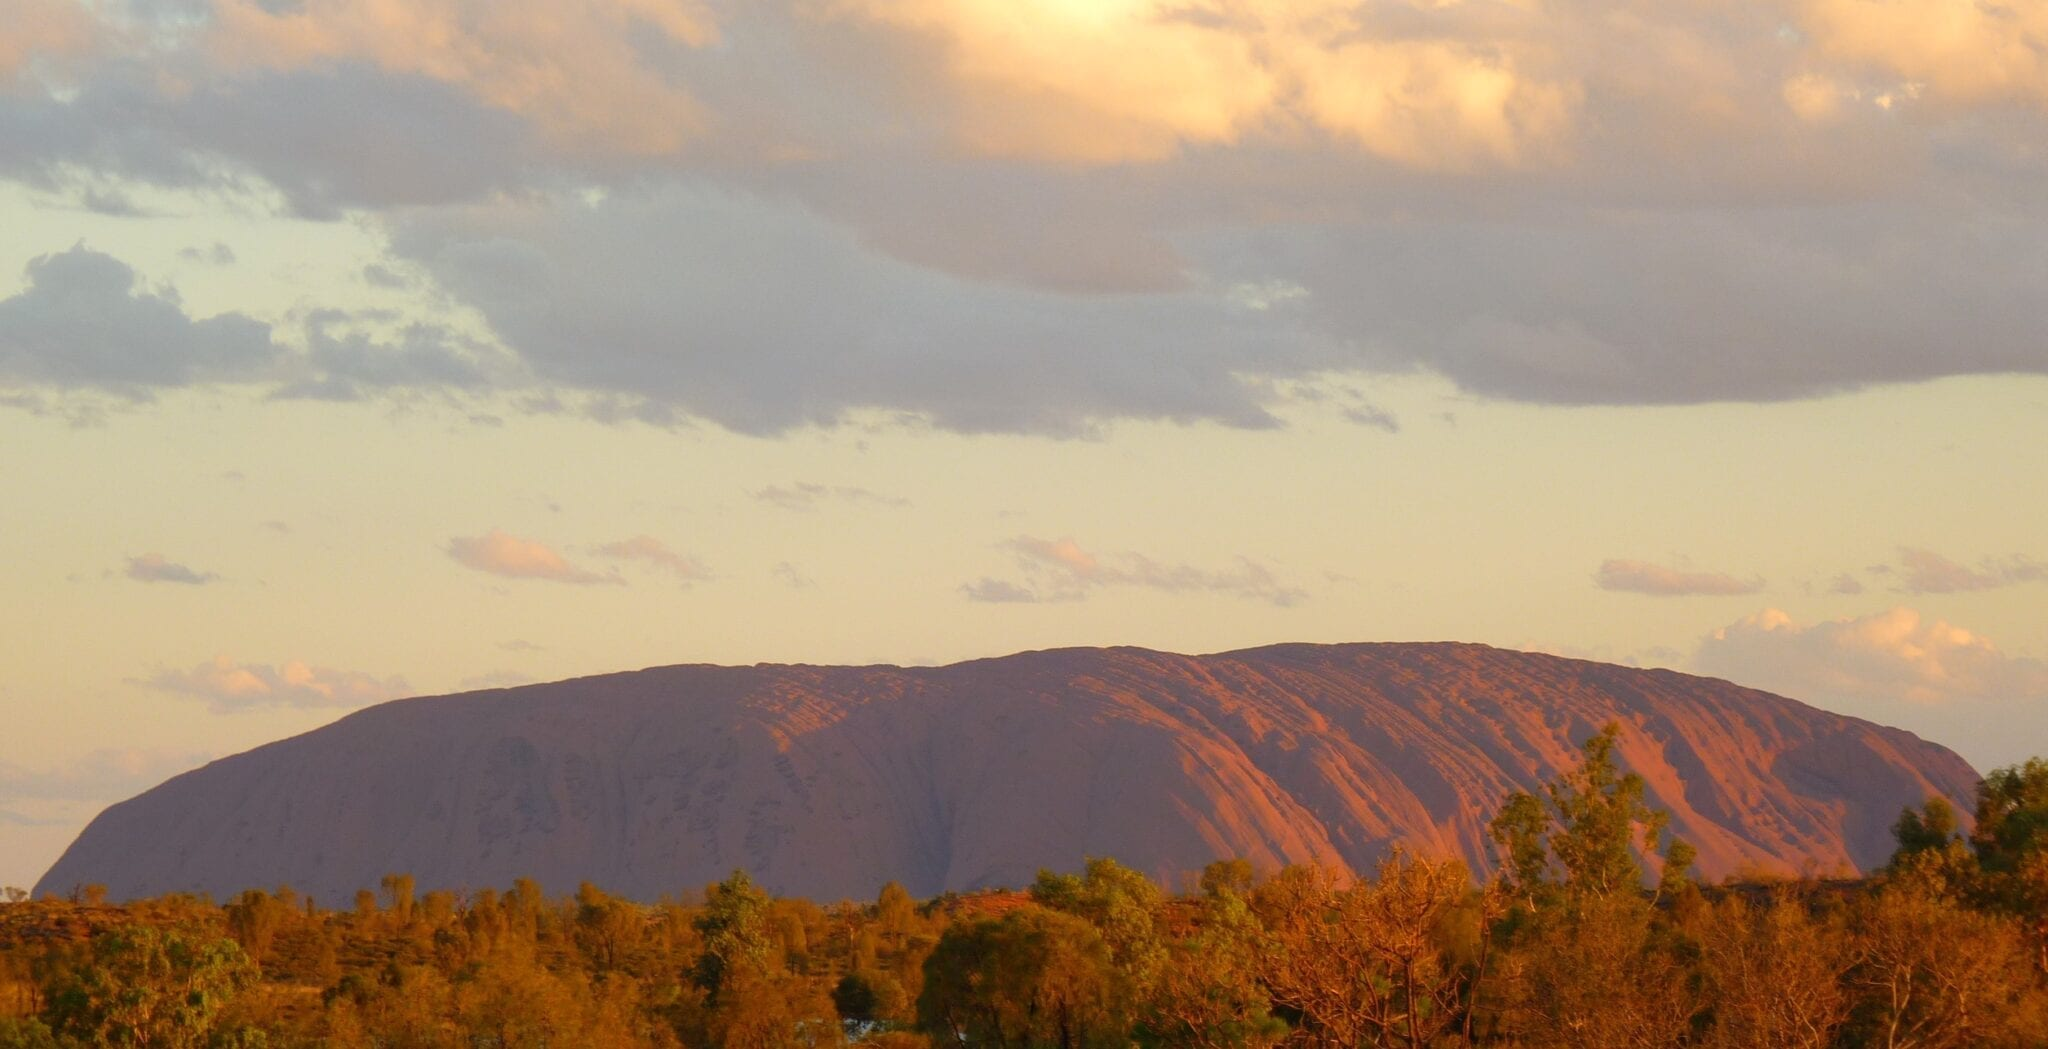 Uluru in the late afternoon light. What Is Uluru?